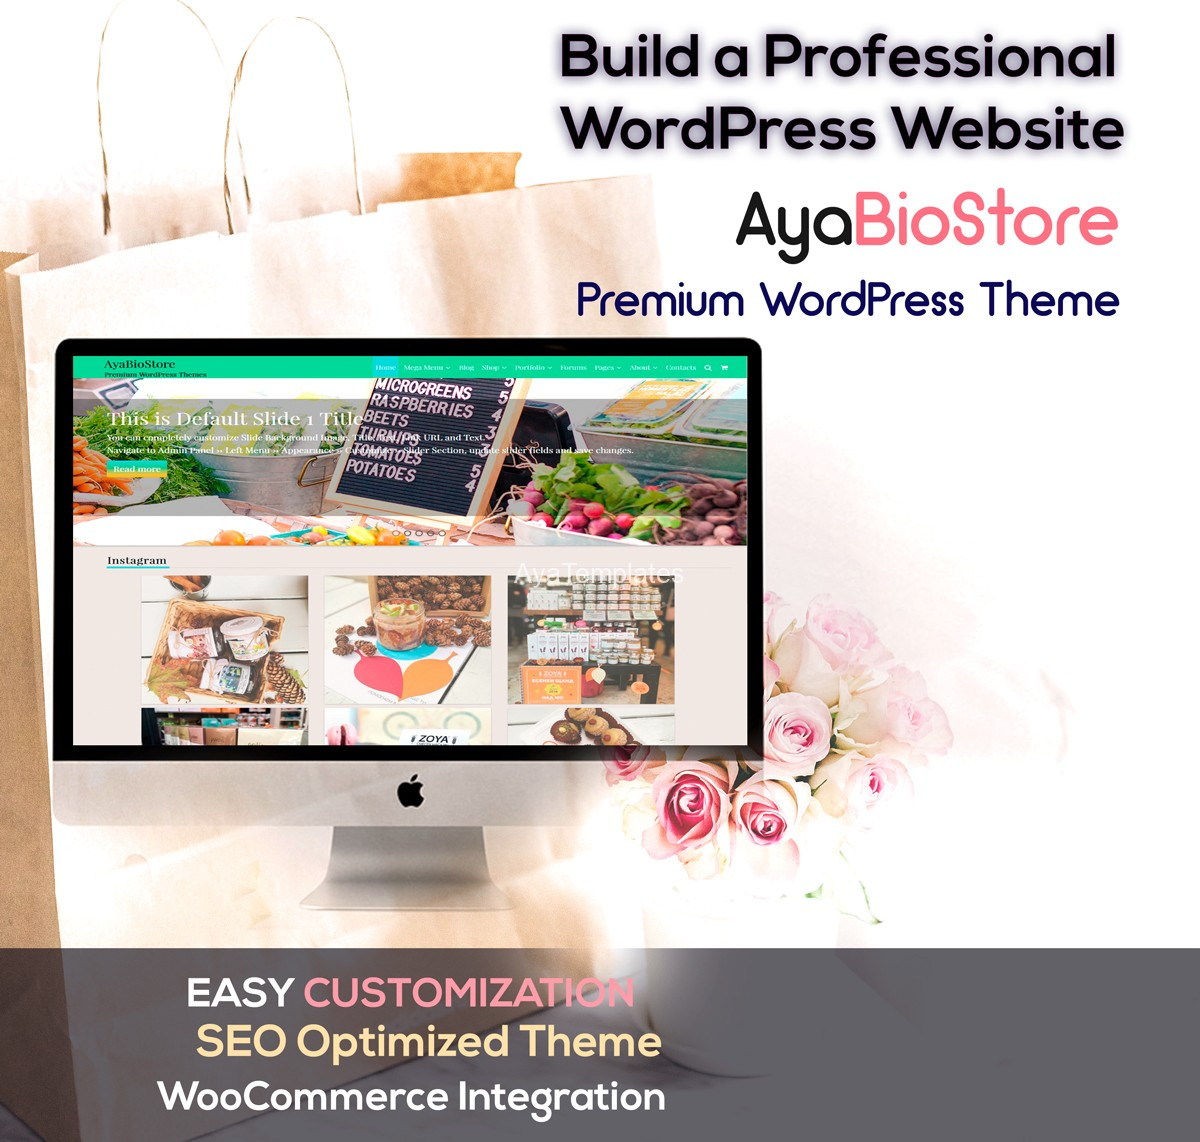 AyaBioStorePro-collage-premium-wordpress-theme